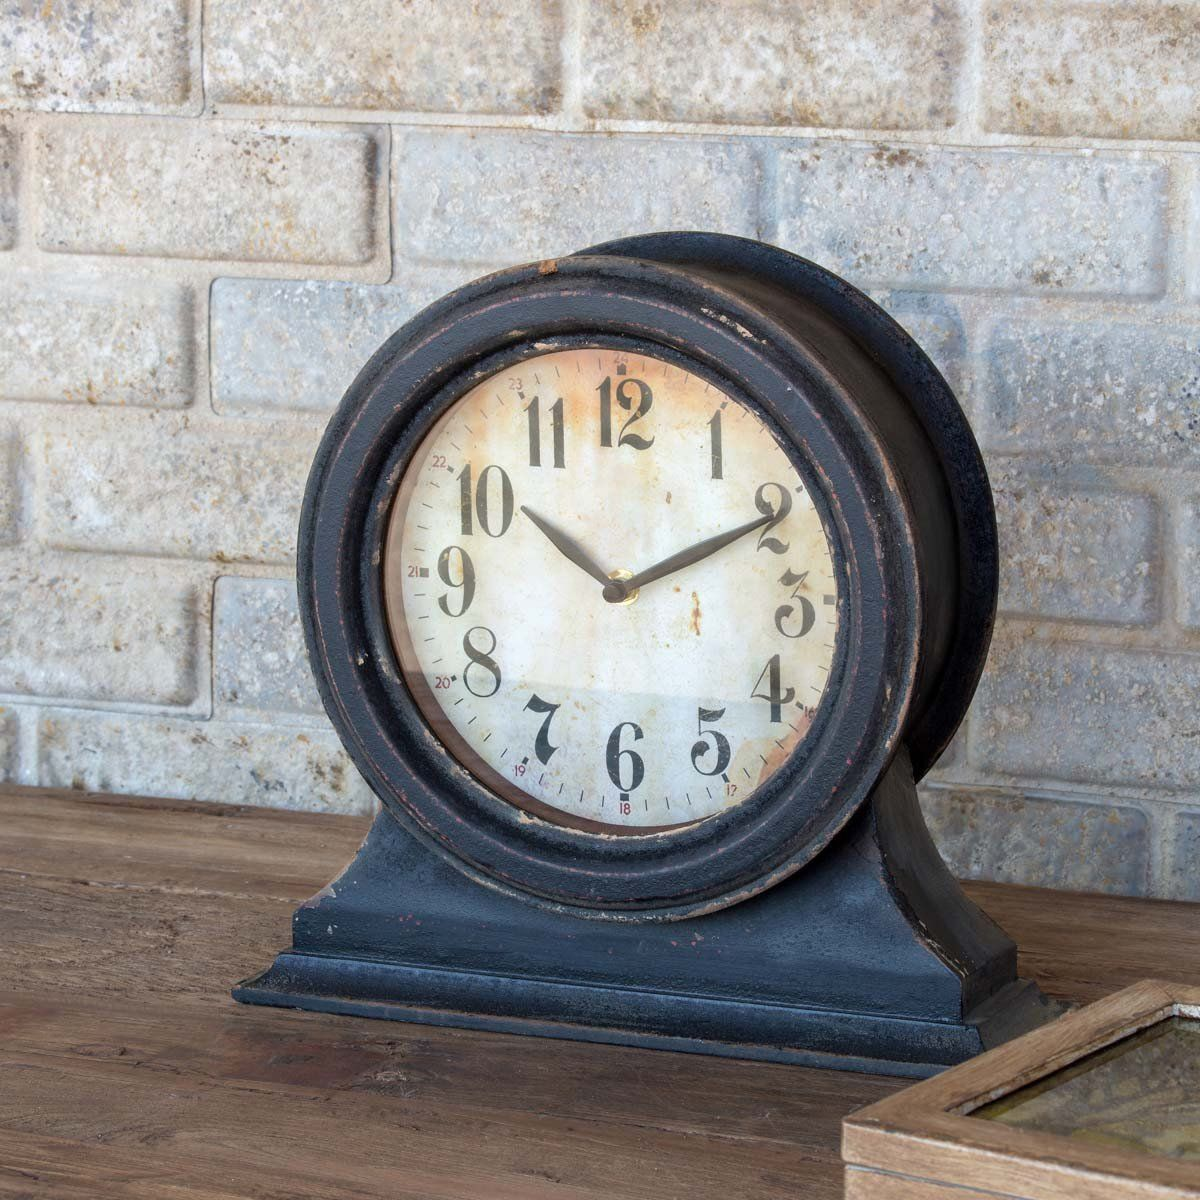 Lovecup In 2021 Mantle Clock Table Clock Mantel Clock